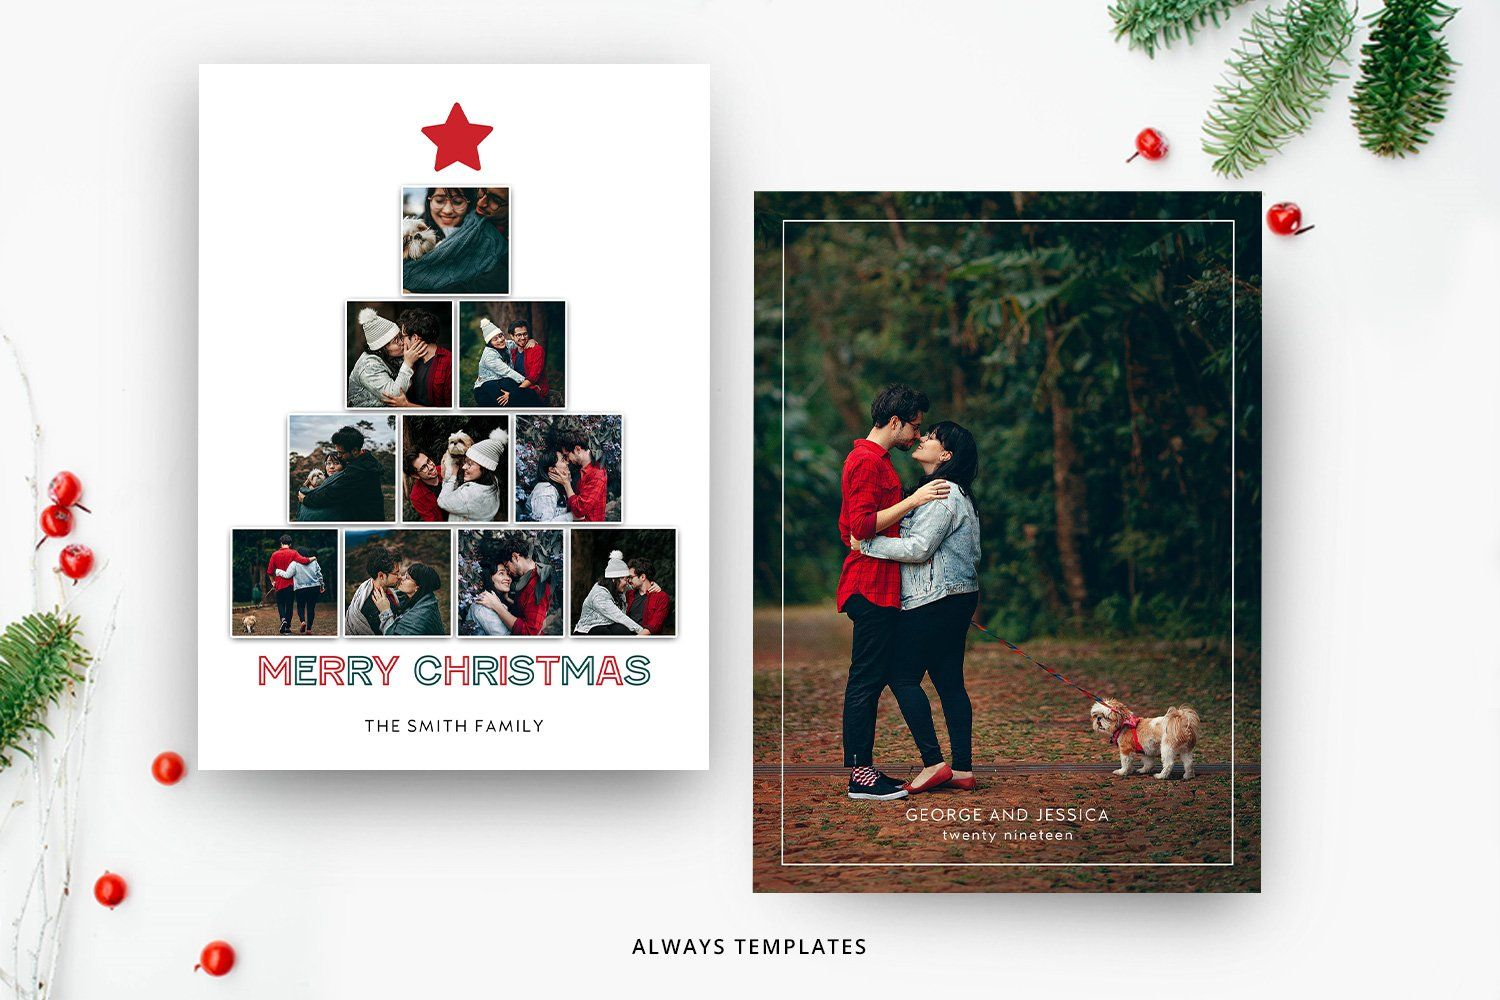 Christmas Card Template Cc037 Christmas Card Template Christmas Photo Card Template Photoshop Christmas Card Template